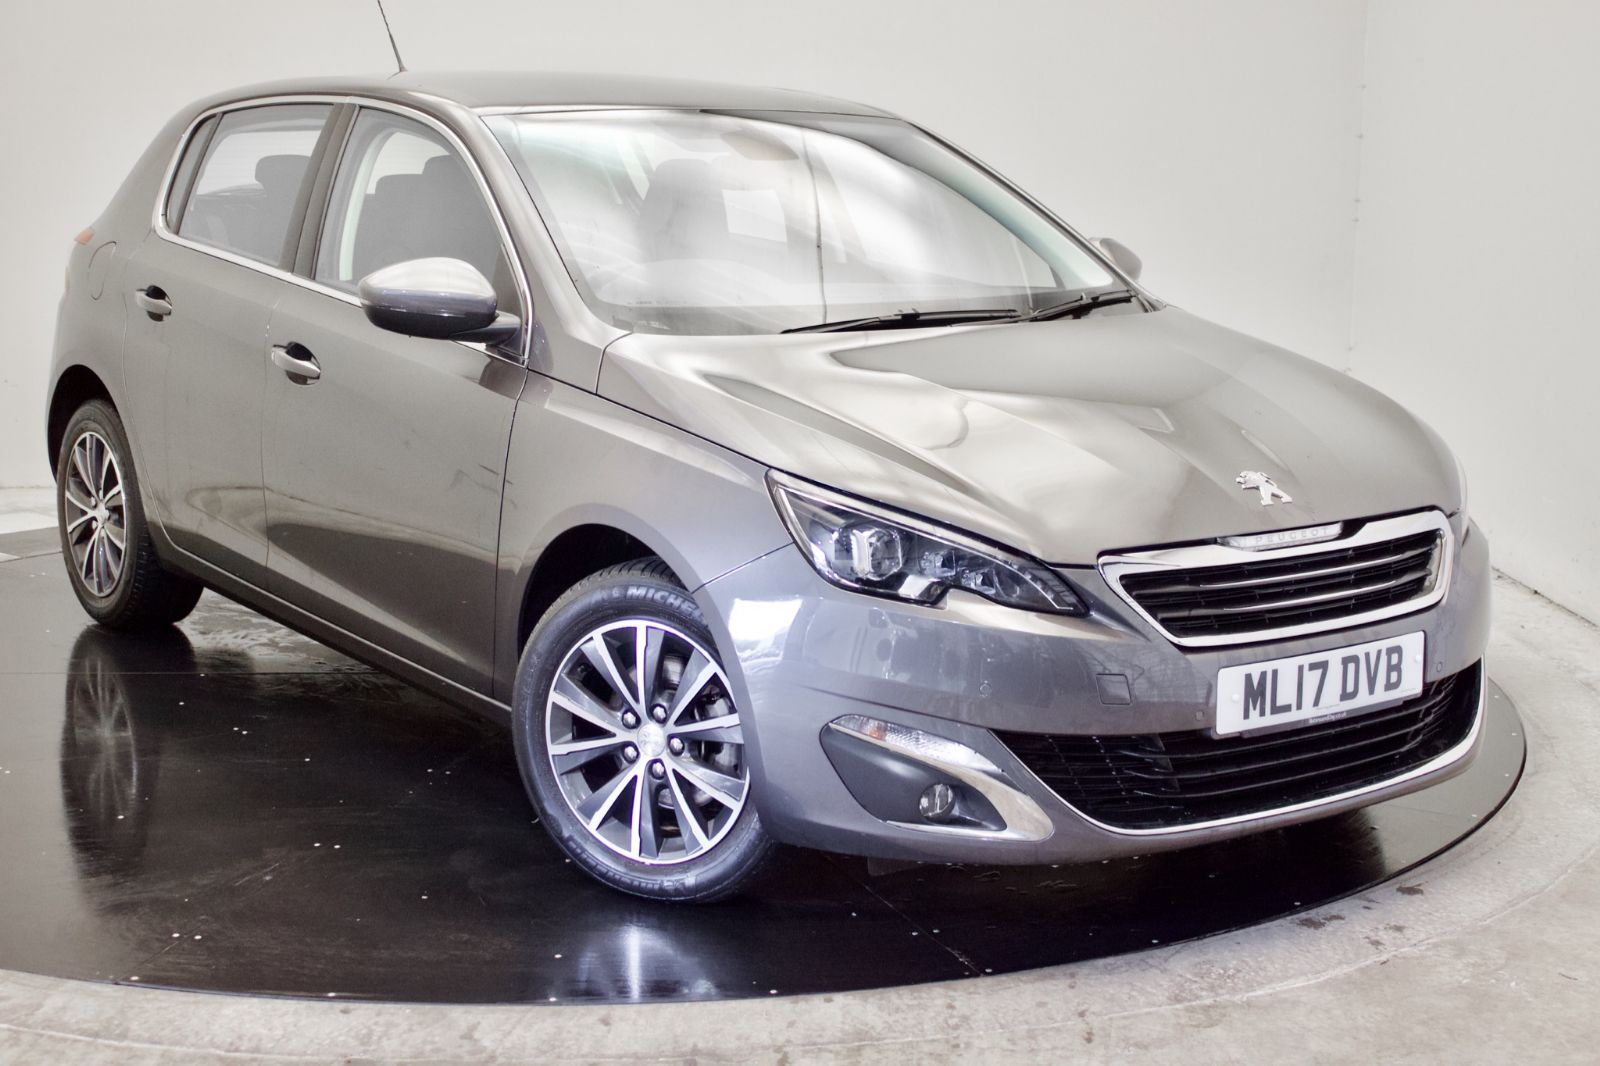 Peugeot 308 ALLURE HDI BLUE S/S **PCP Special From £189 Deposit £189 Per Month**